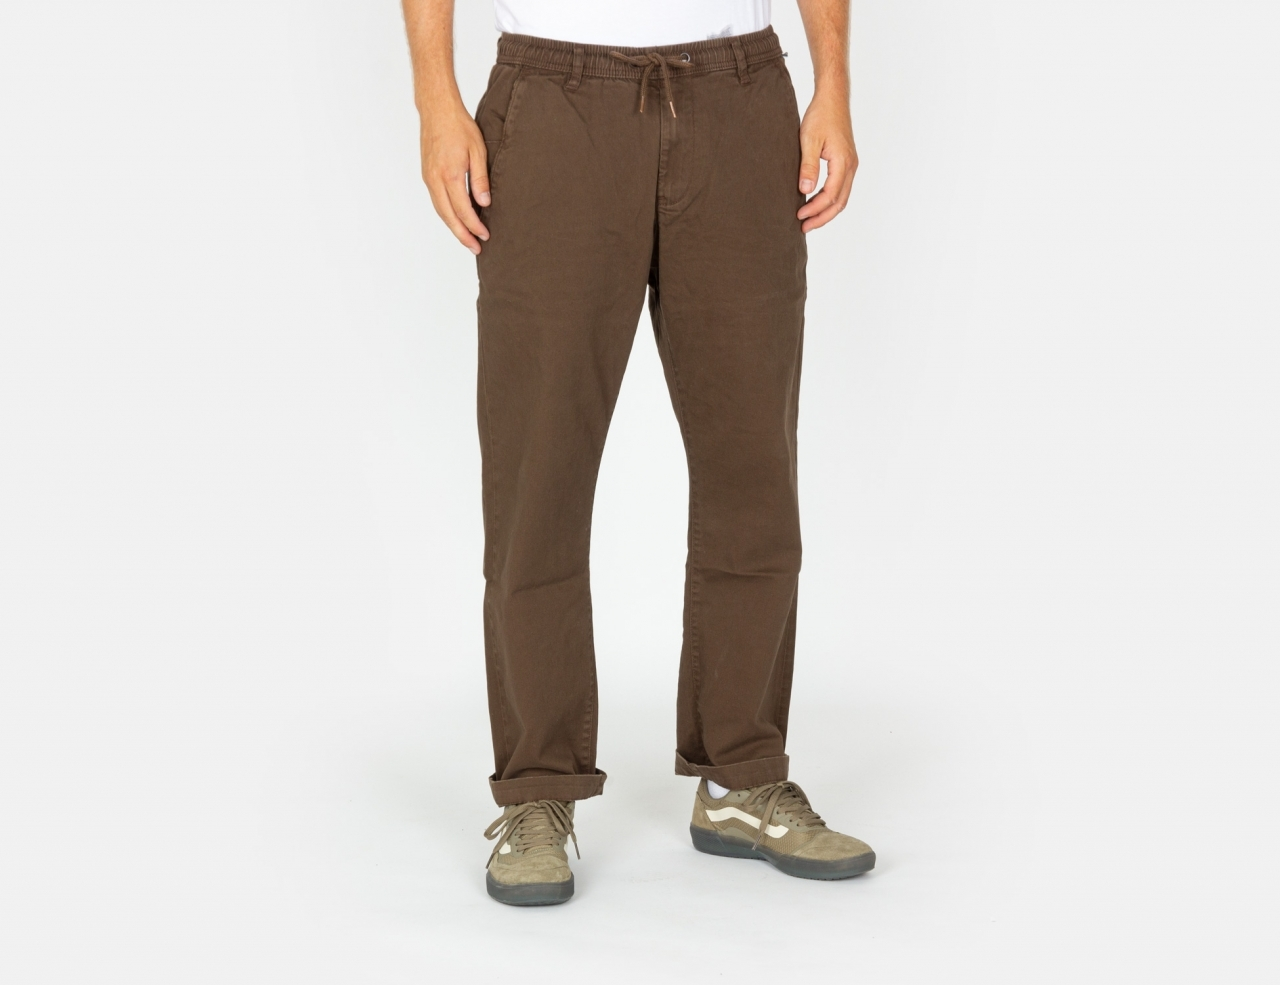 Reell Jeans Reflex Loose Chino Pant - Dark Brown